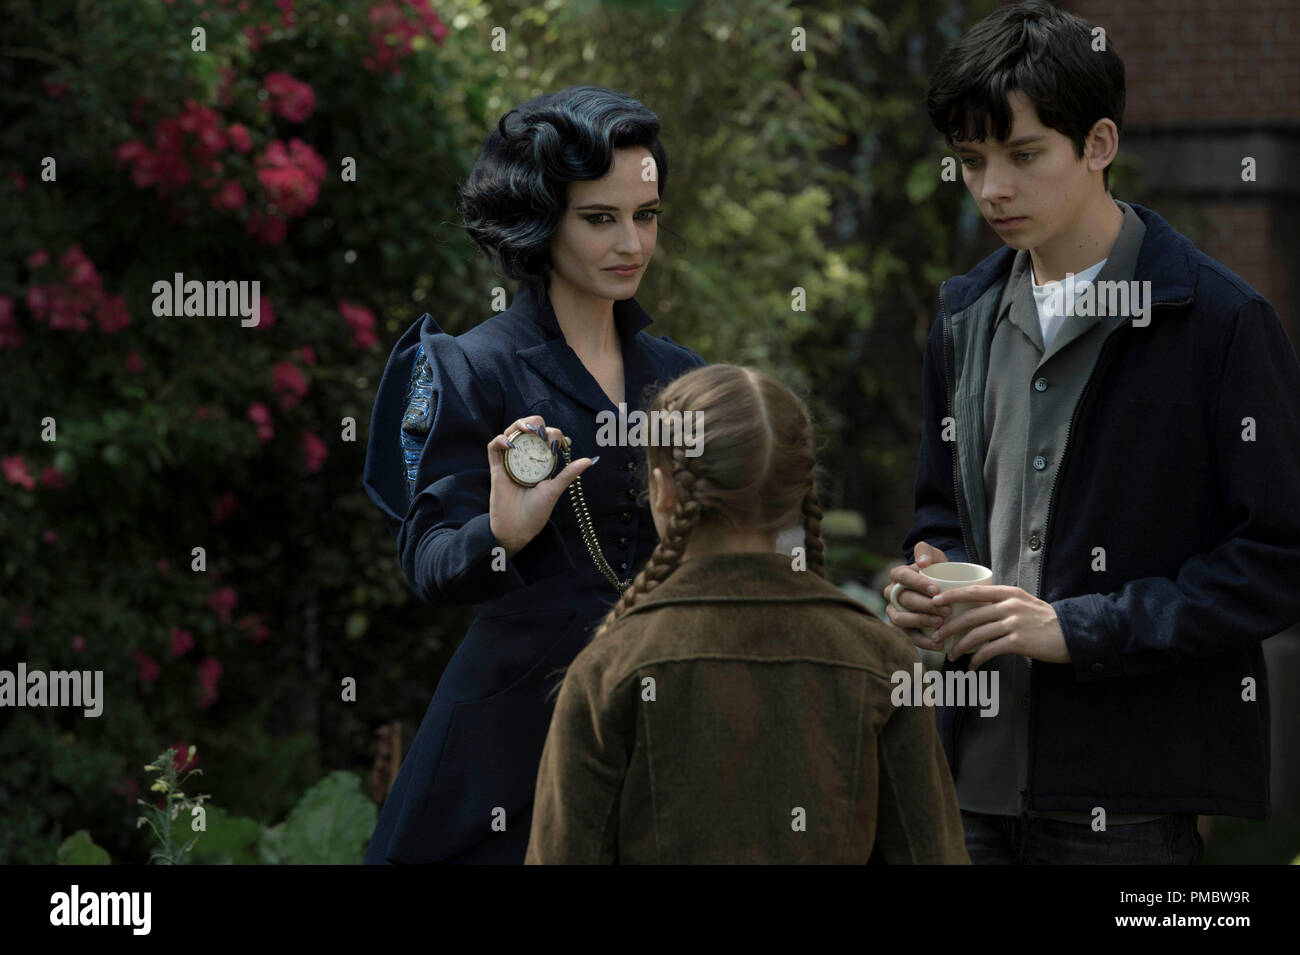 'Miss Peregrine's Home for Peculiar Children' (2016) Miss Peregrine (Eva Green) demonstrates one of her many time-bending talents to Jake (Asa Butterfield) and Fiona (Georgia Pemberton). - Stock Image